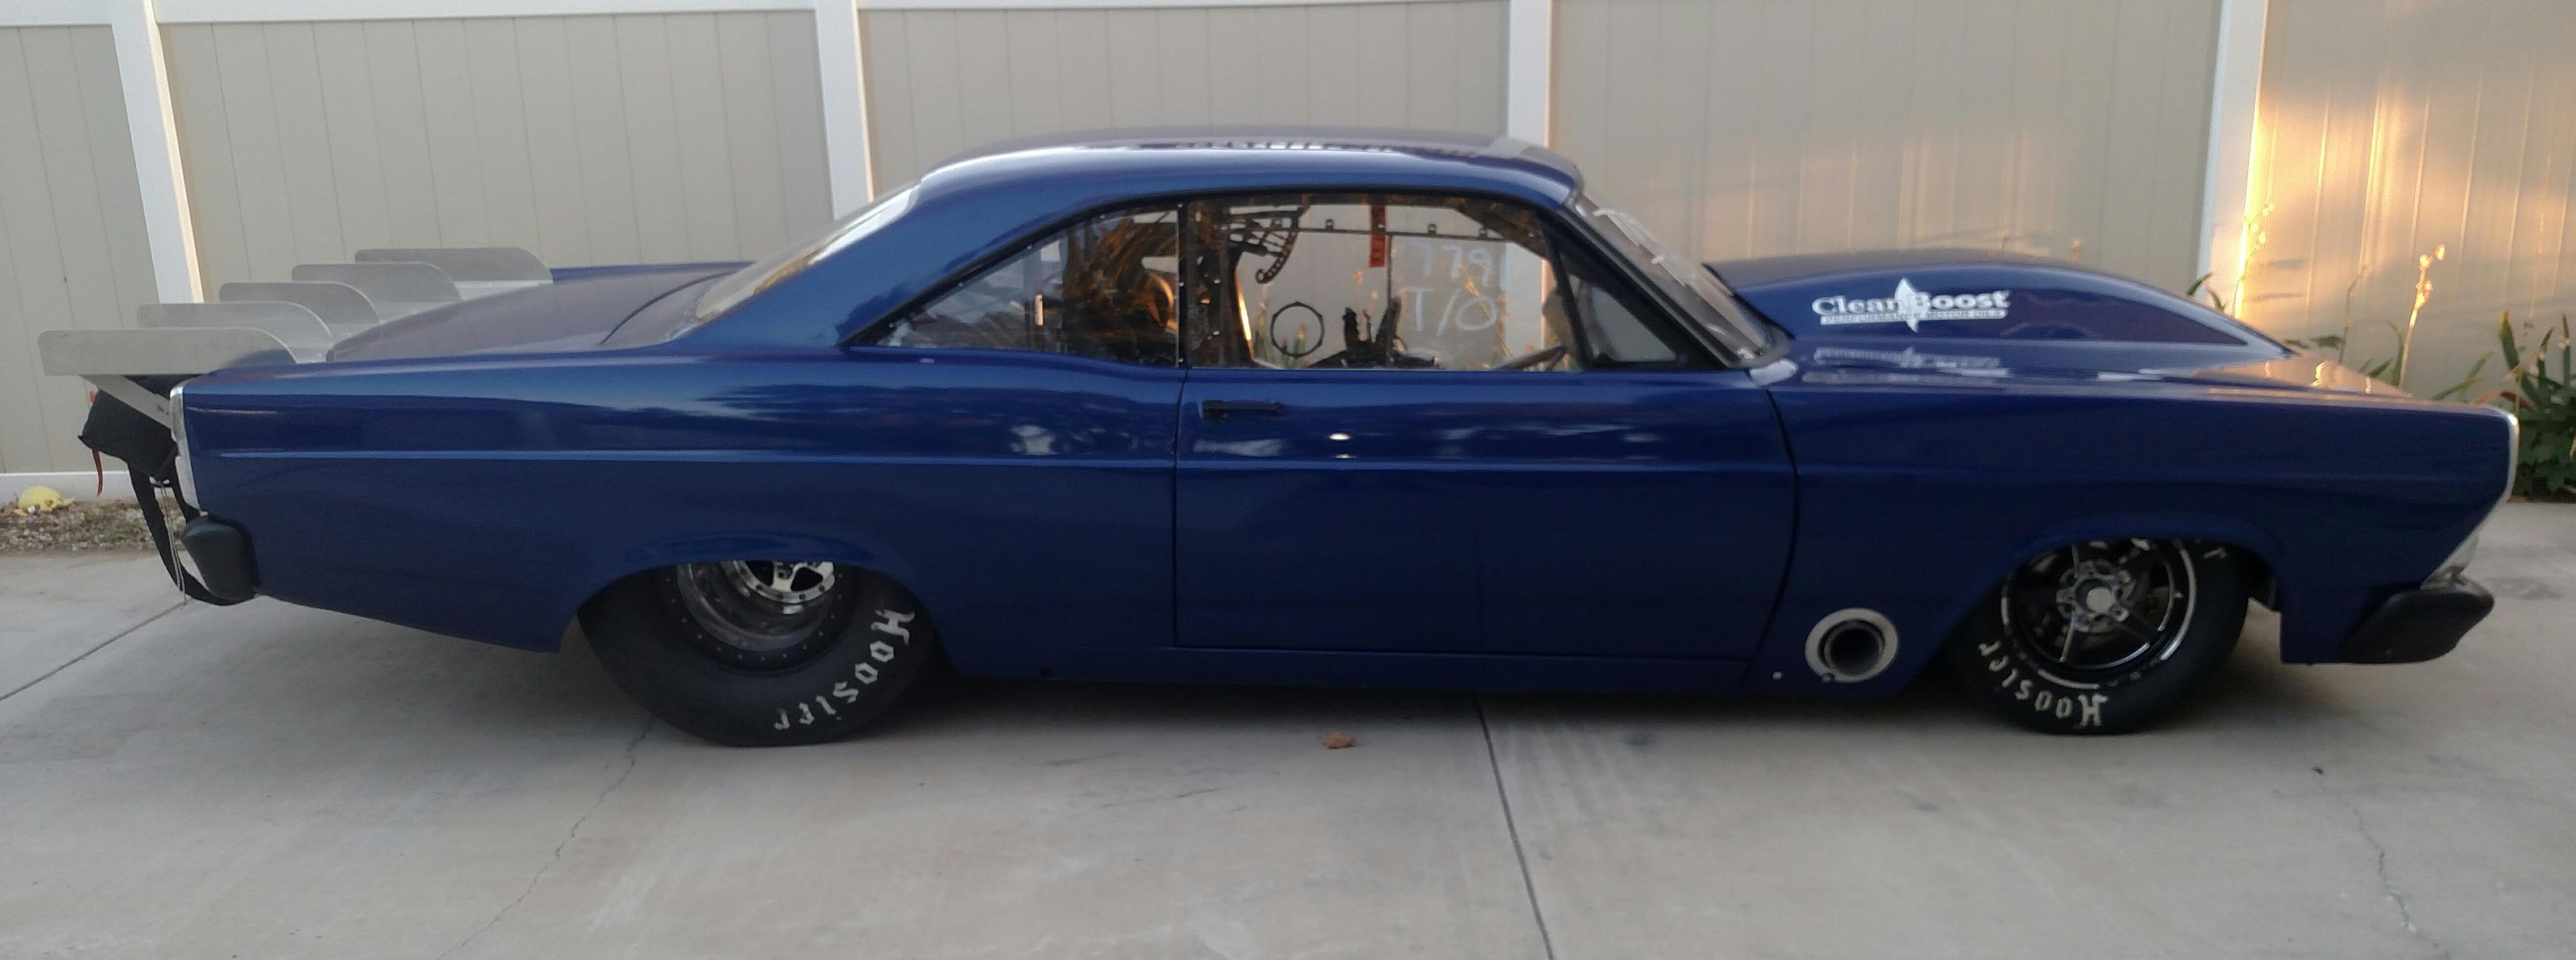 He found this 67 fairlane in houston texas in 2014 but realized it was not the best choice for a race car so he hired dean